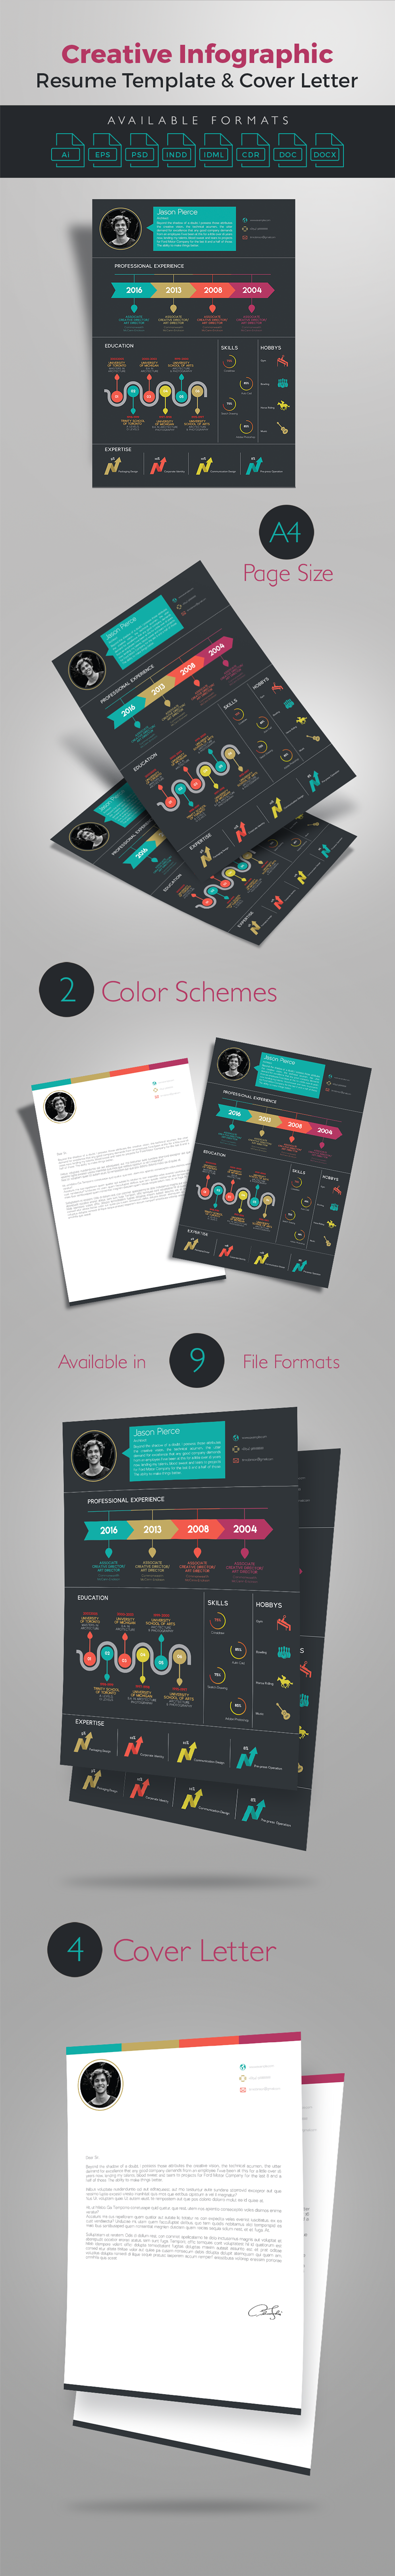 Creative infographic resume template with cover letter free creative infographic resume template with cover letter pronofoot35fo Images